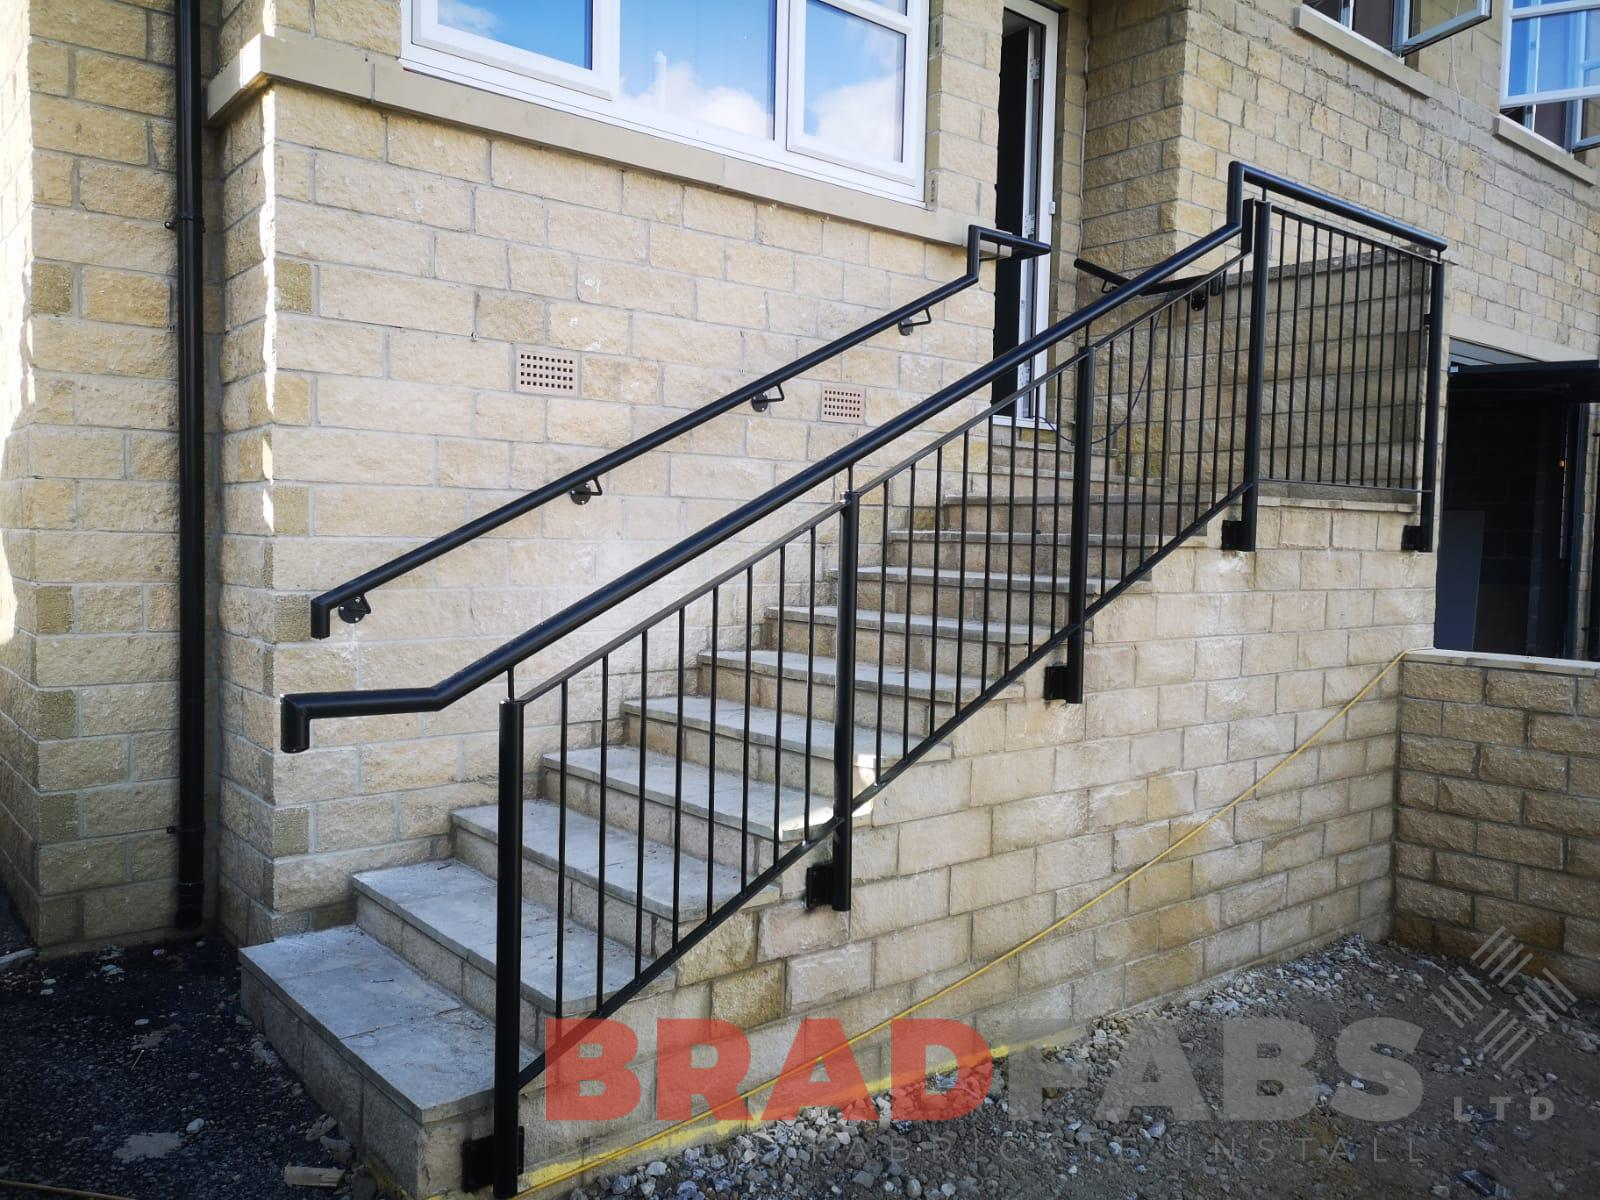 Bespoke railings and handrail mild steel galvanised and powder coated by Bradfabs